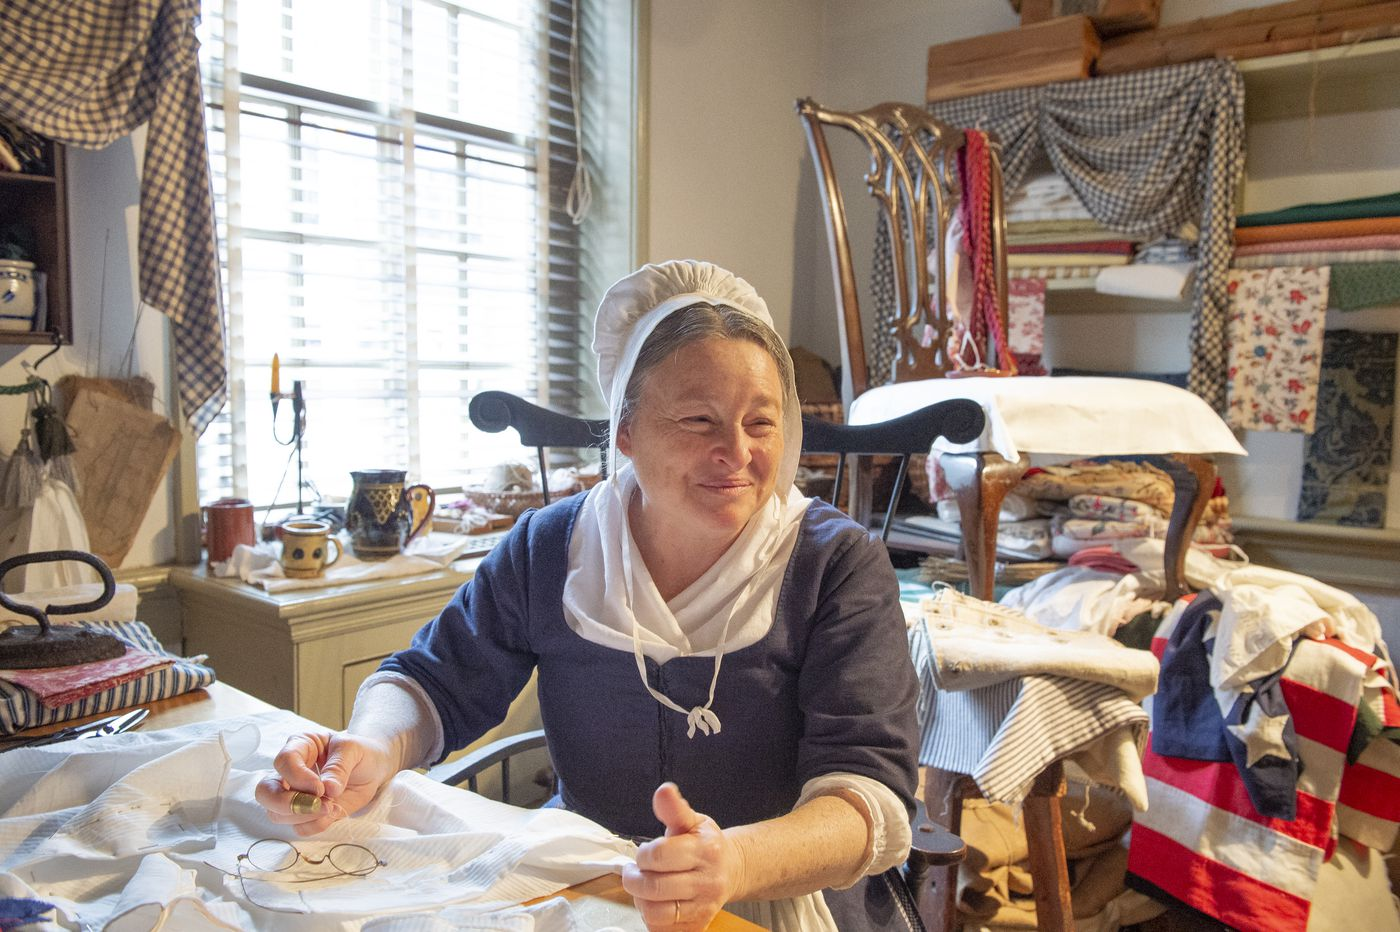 Philly's Betsy Rosses embrace modern entrepreneurism with an old-school upholstery biz